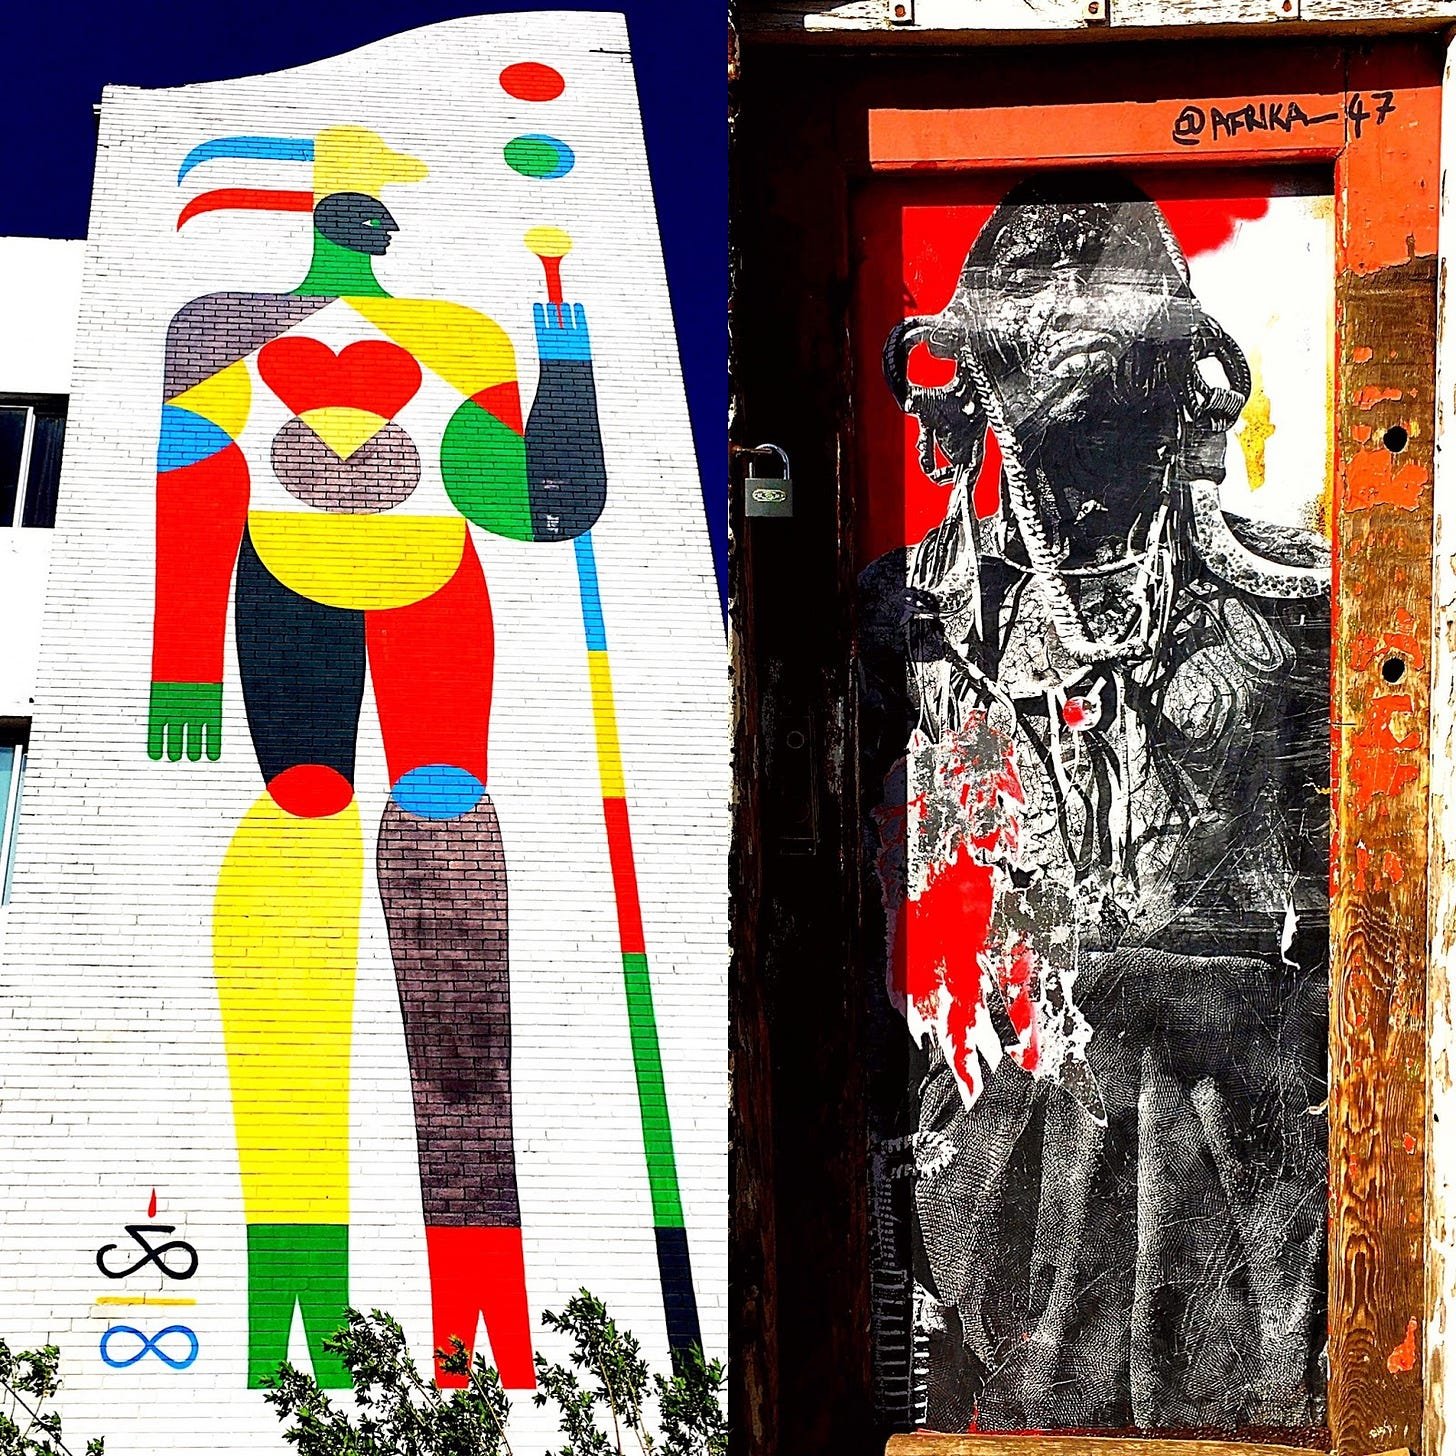 Two colorful murals